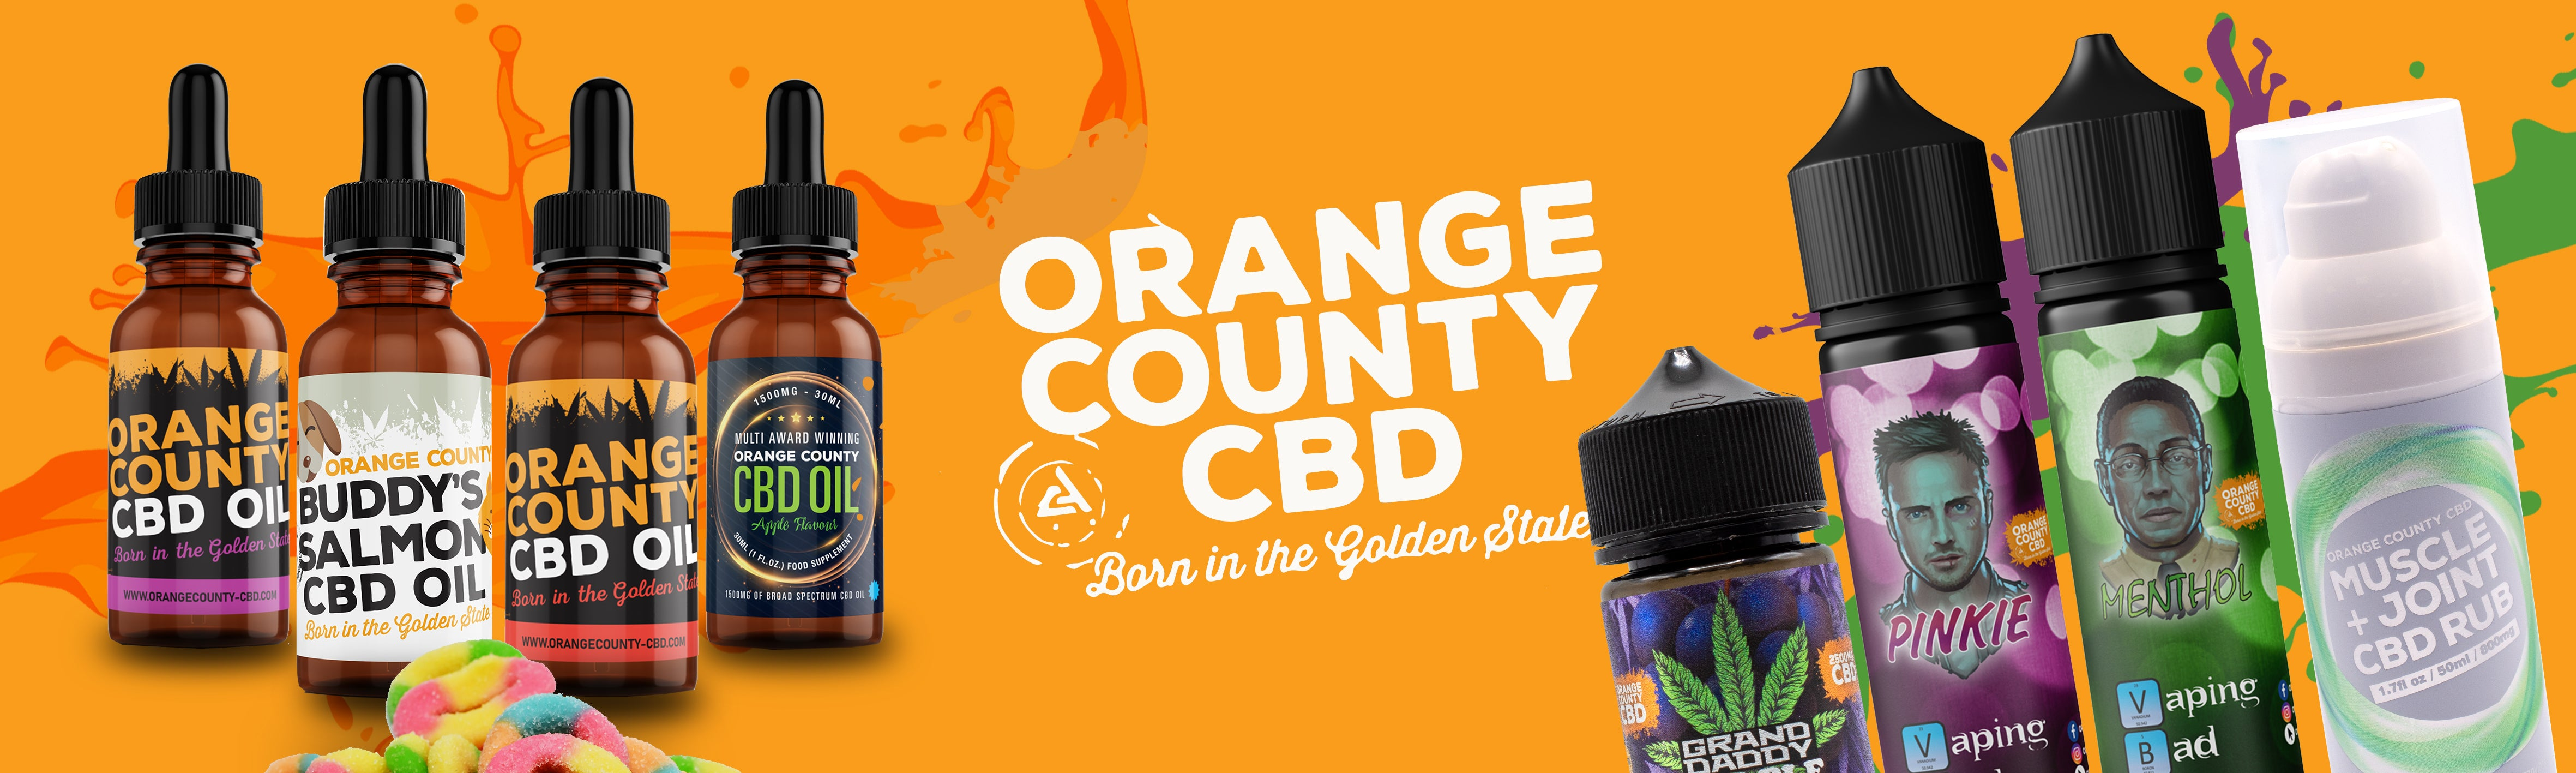 Orange County CBD